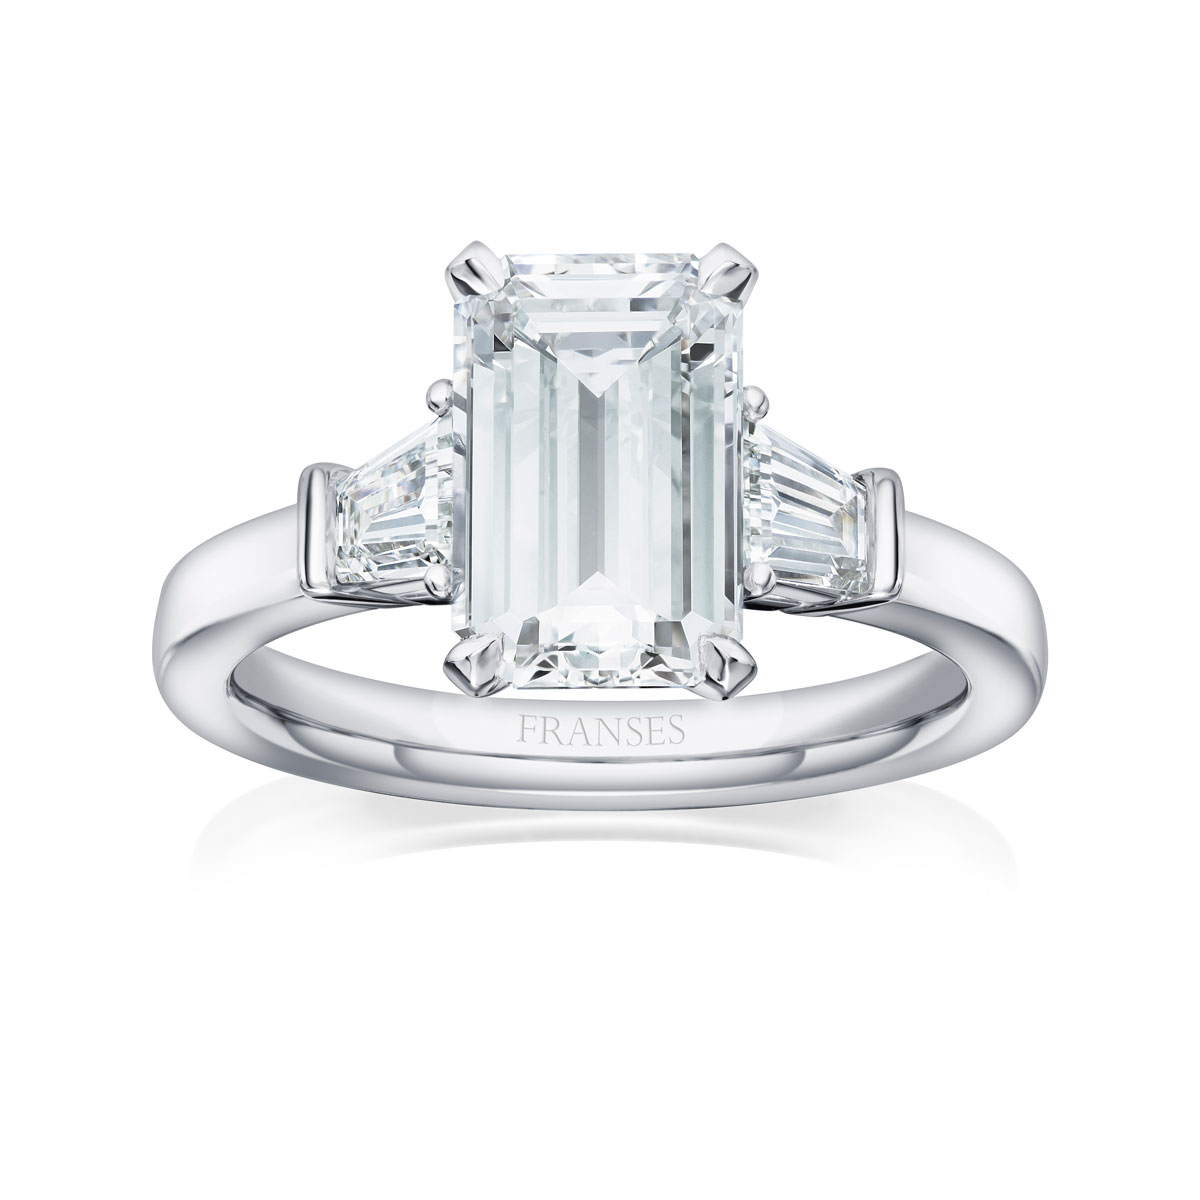 Emerald Cut Solitaire Ring - 01-01-063